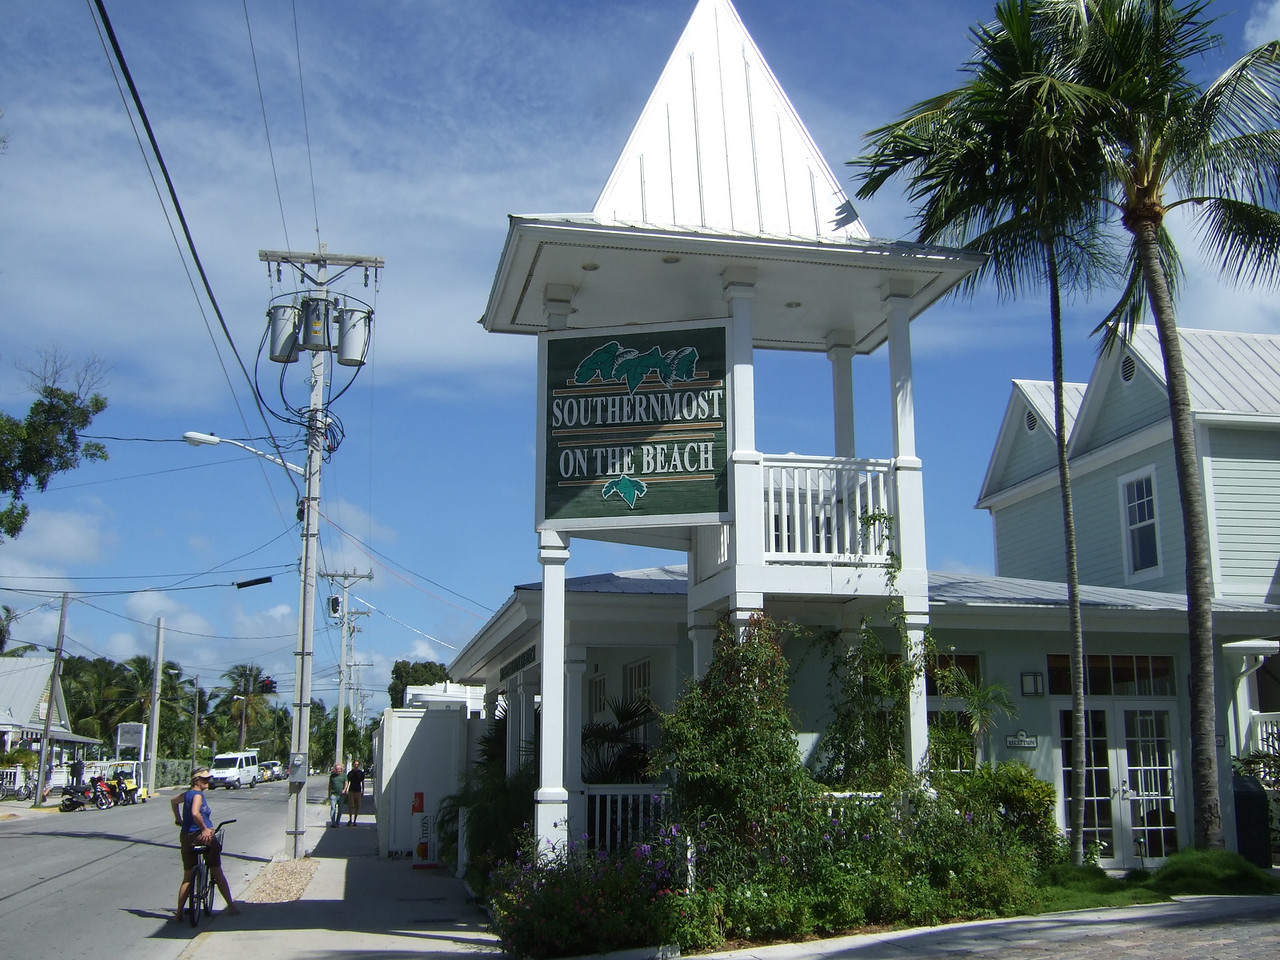 This building is not the southernmost, but it's the southernmost on the beach.